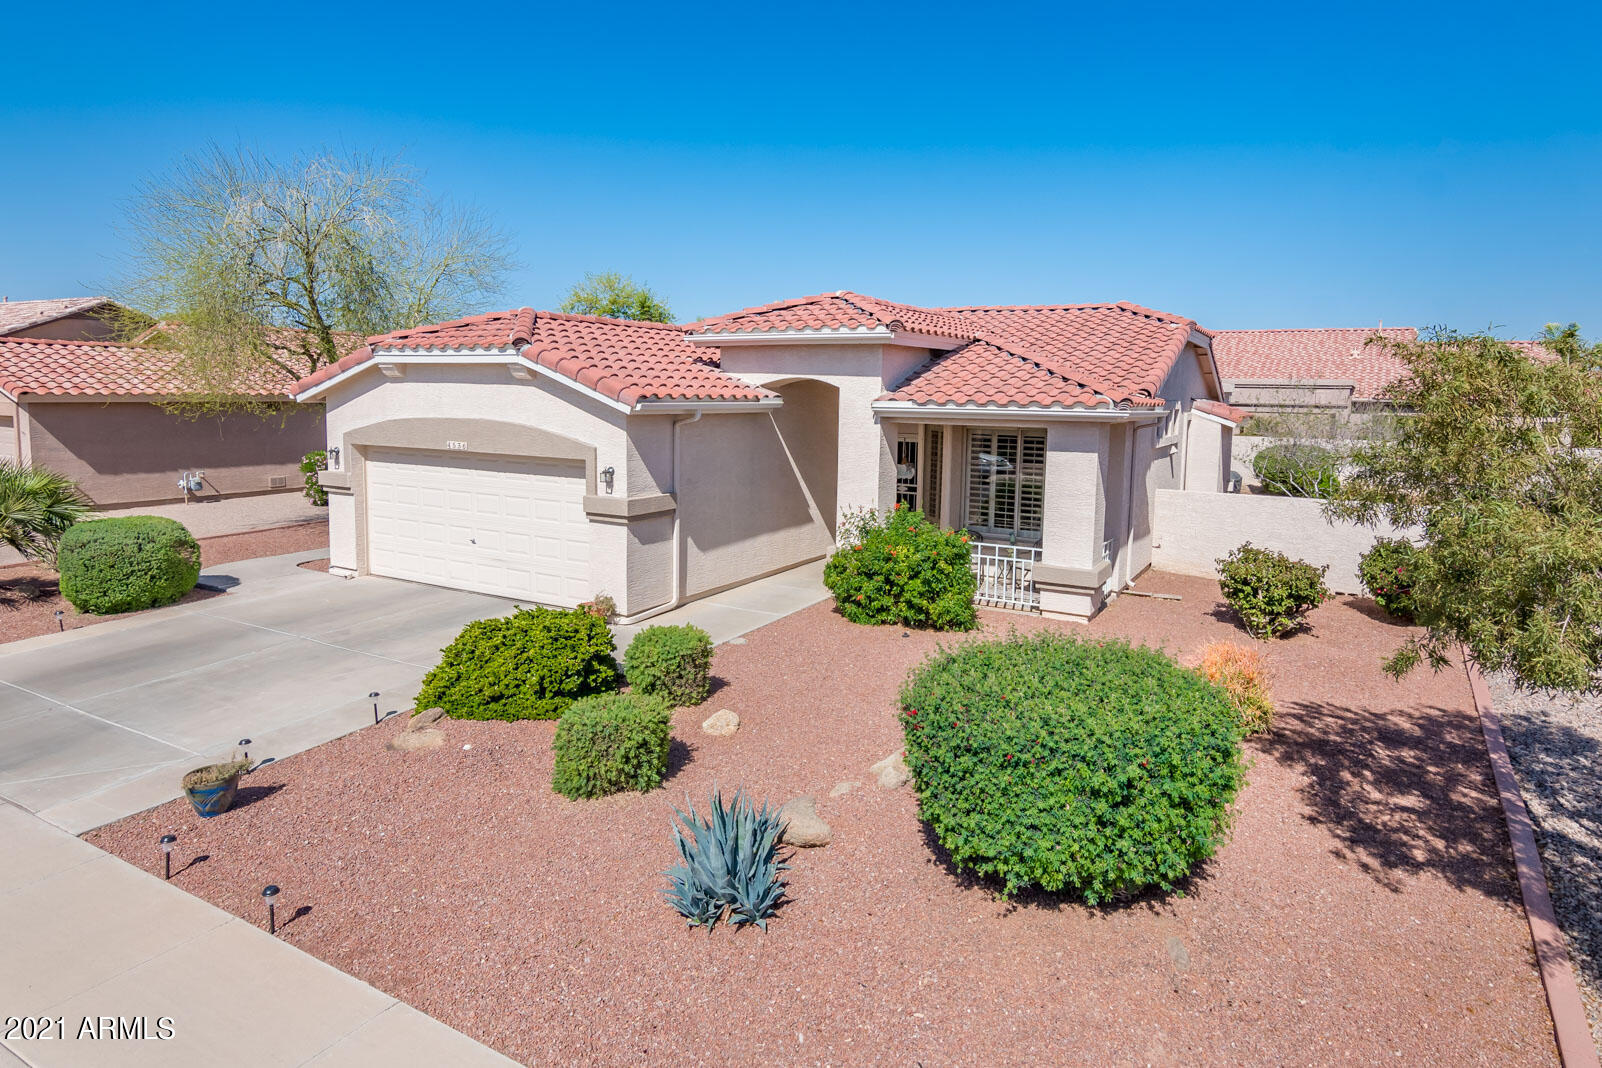 4536 STRAWBERRY Drive, Gilbert, Arizona 85298, 3 Bedrooms Bedrooms, ,1.75 BathroomsBathrooms,Residential,For Sale,STRAWBERRY,6214610